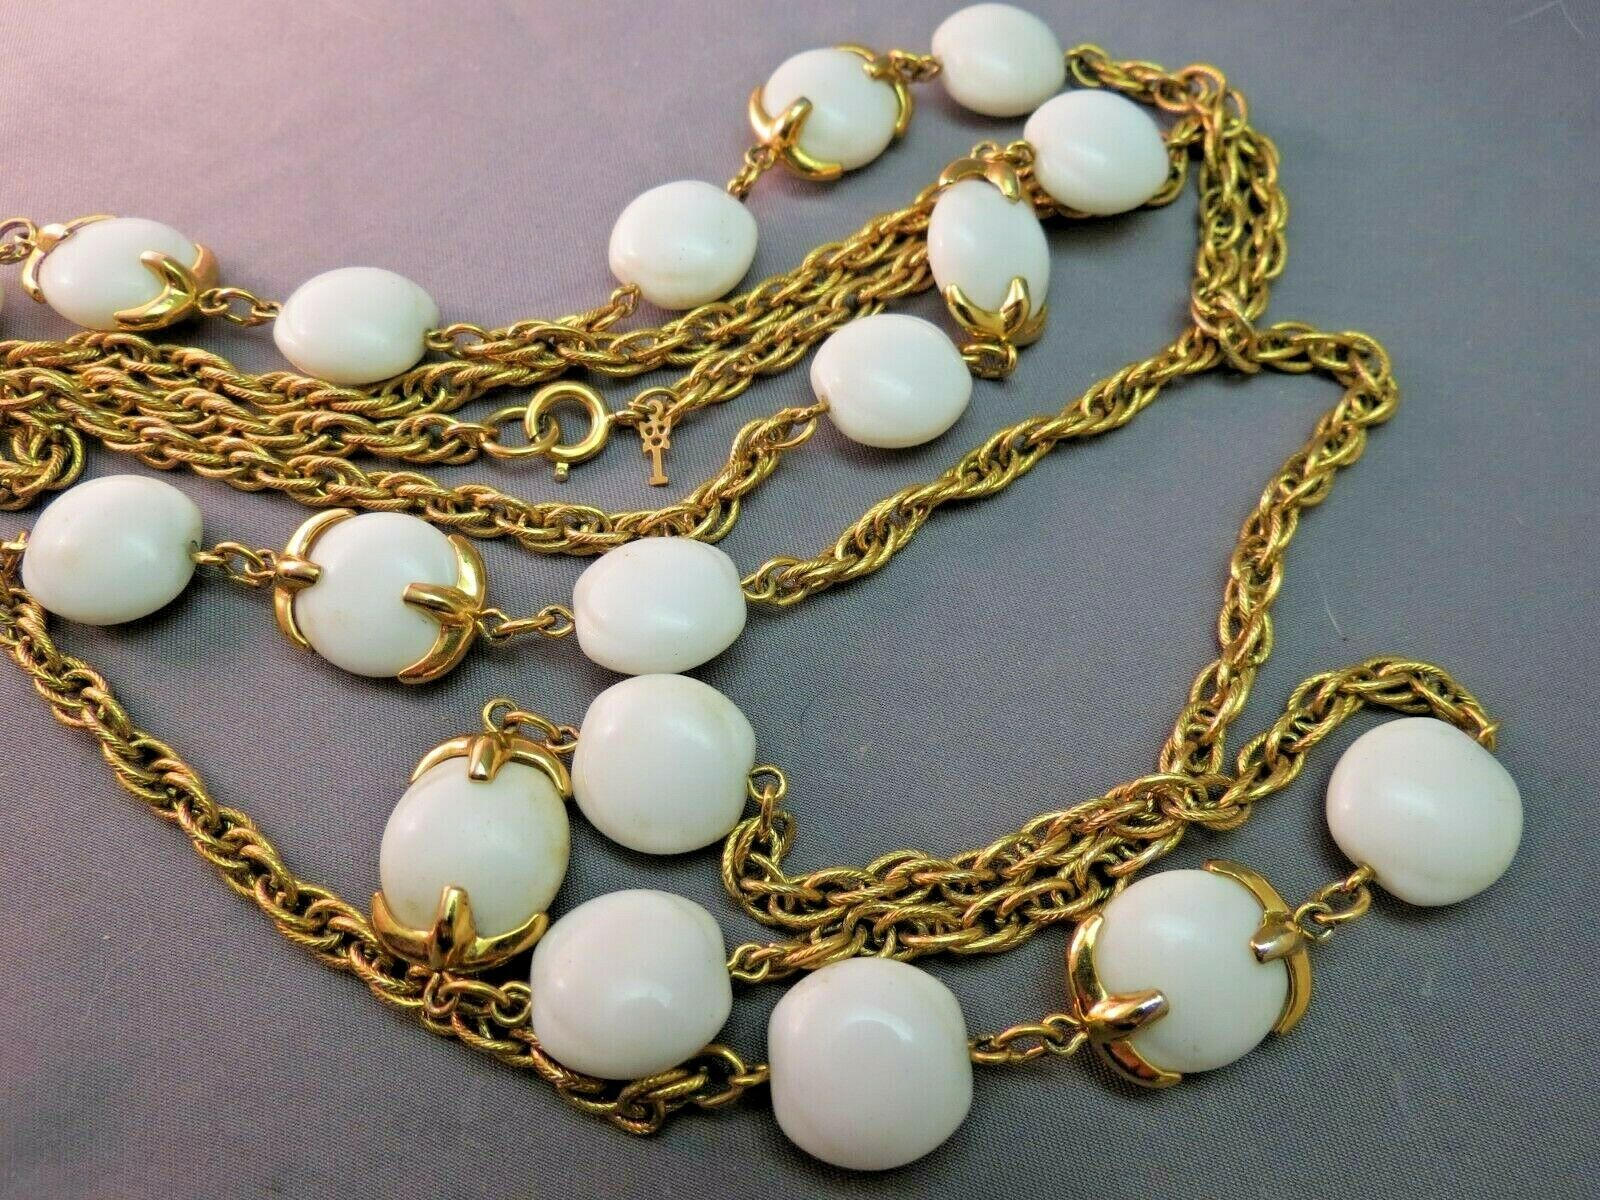 """VTG Crown Trifari Long Necklace Chain Gold Plated Glass Beads Couture 54"""" Long image 2"""